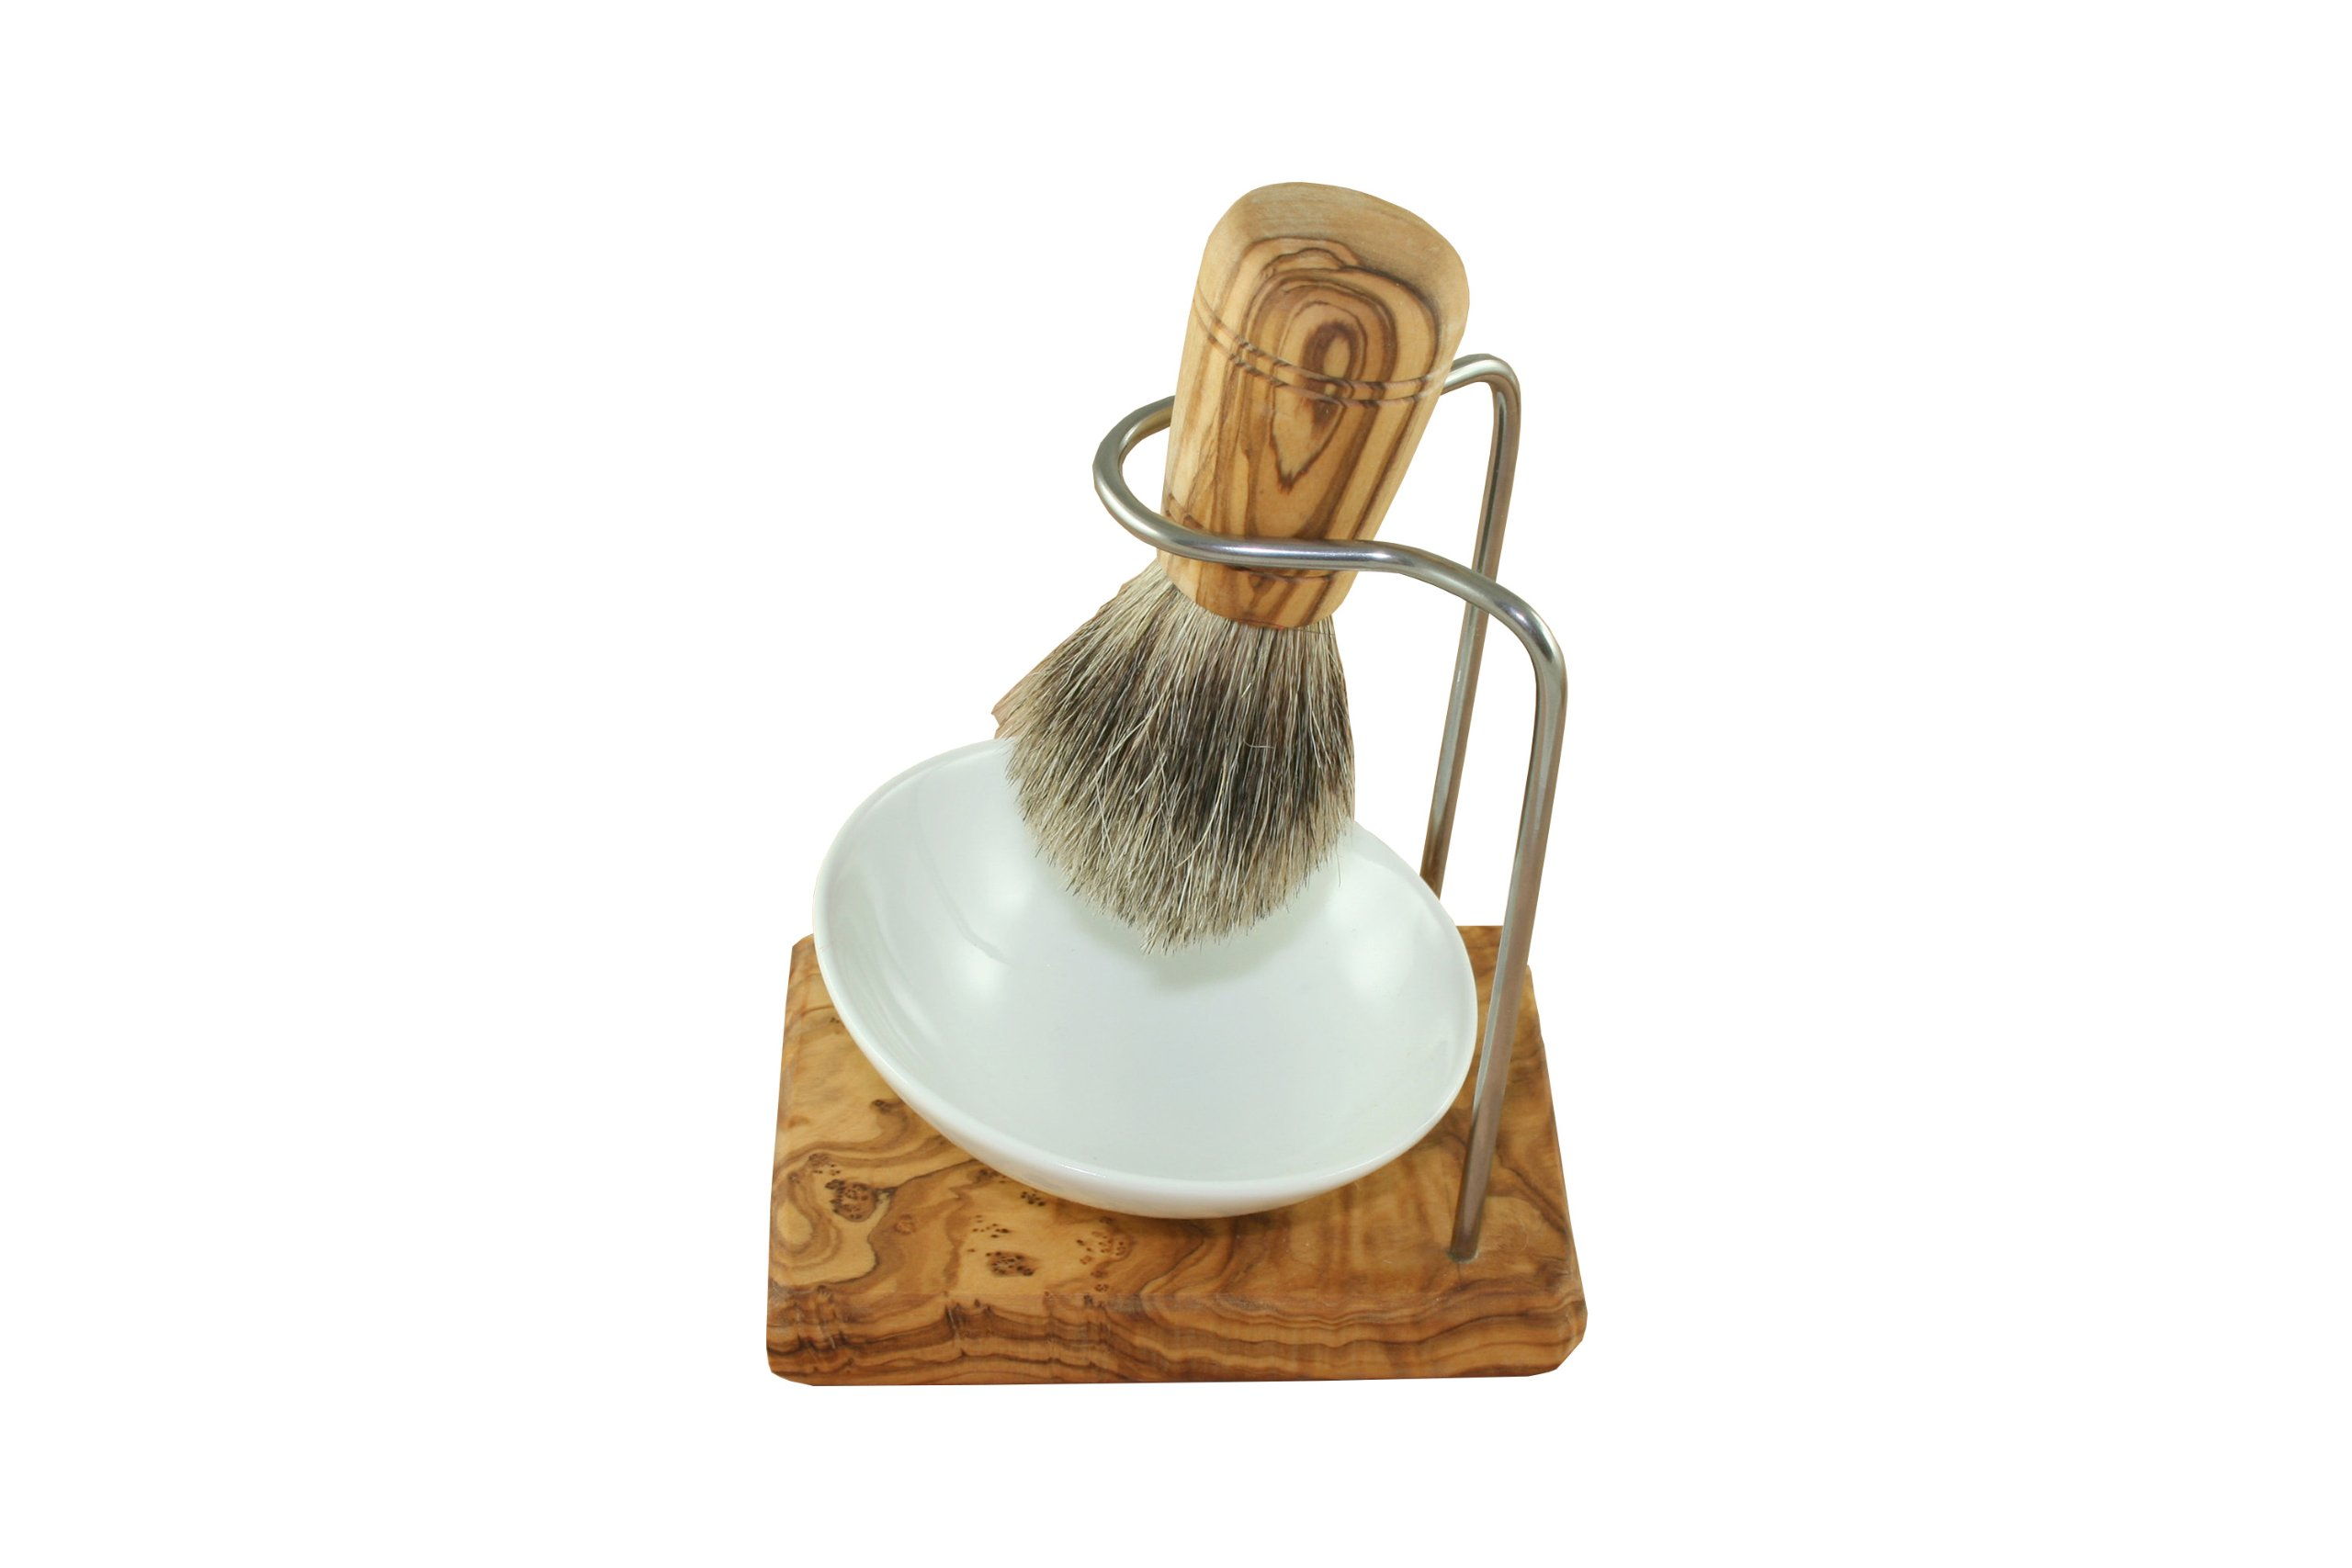 Shaving brush holder design made of olive wood with porcelain bowl Ø 10 cm and shaving brush grey badger hair